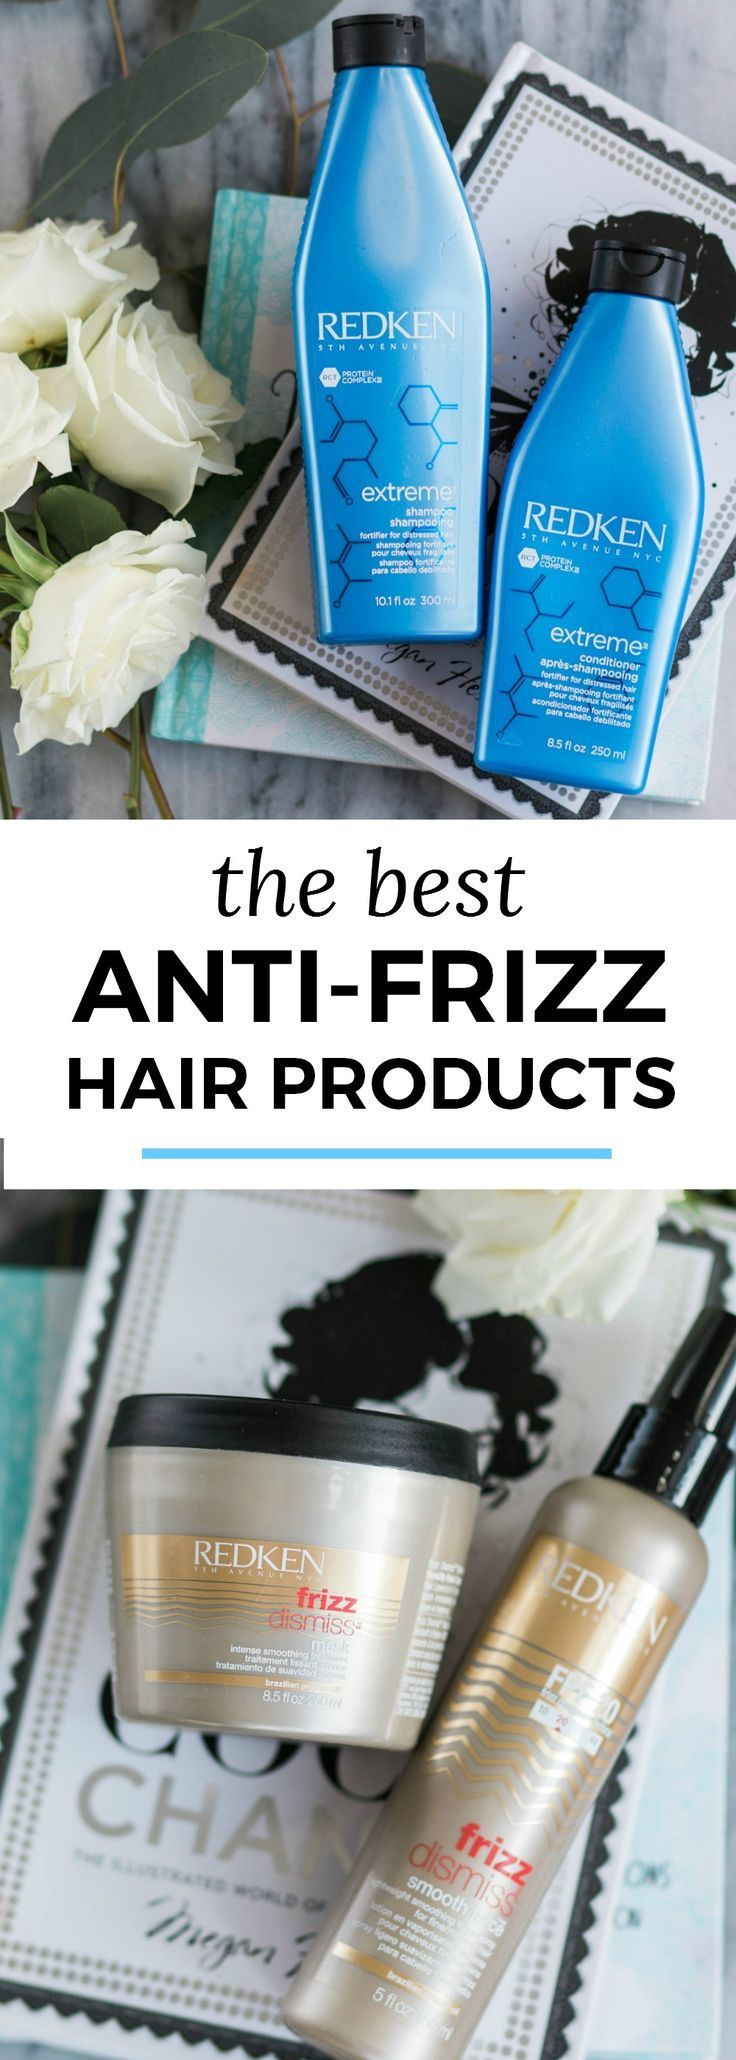 The best anti-frizz hair products for fine hair + Redken Extreme and Frizz Defense line review + my experience at Hair Cuttery #MyHCLook sponsored by @haircuttery | Best hair products, luxury hair care, Redken deep conditioner, hair mask, fine hair, fight frizz, beauty review, hair product review, hair product favorites, beauty blogger Ashley Brooke Nicholas, moisturizing hair mask for damaged hair